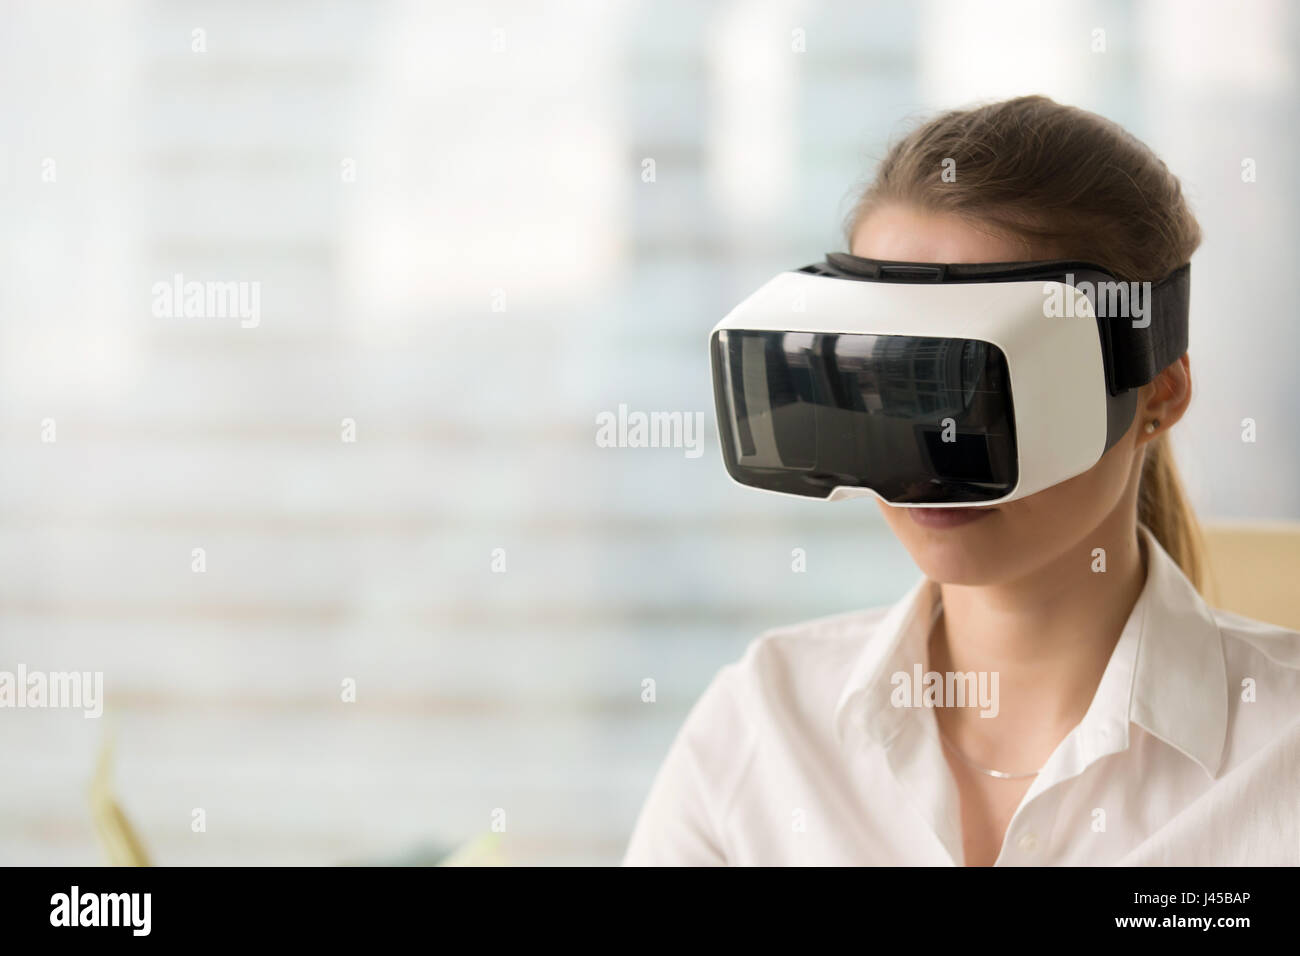 Cyberspace experience with VR headset concept - Stock Image